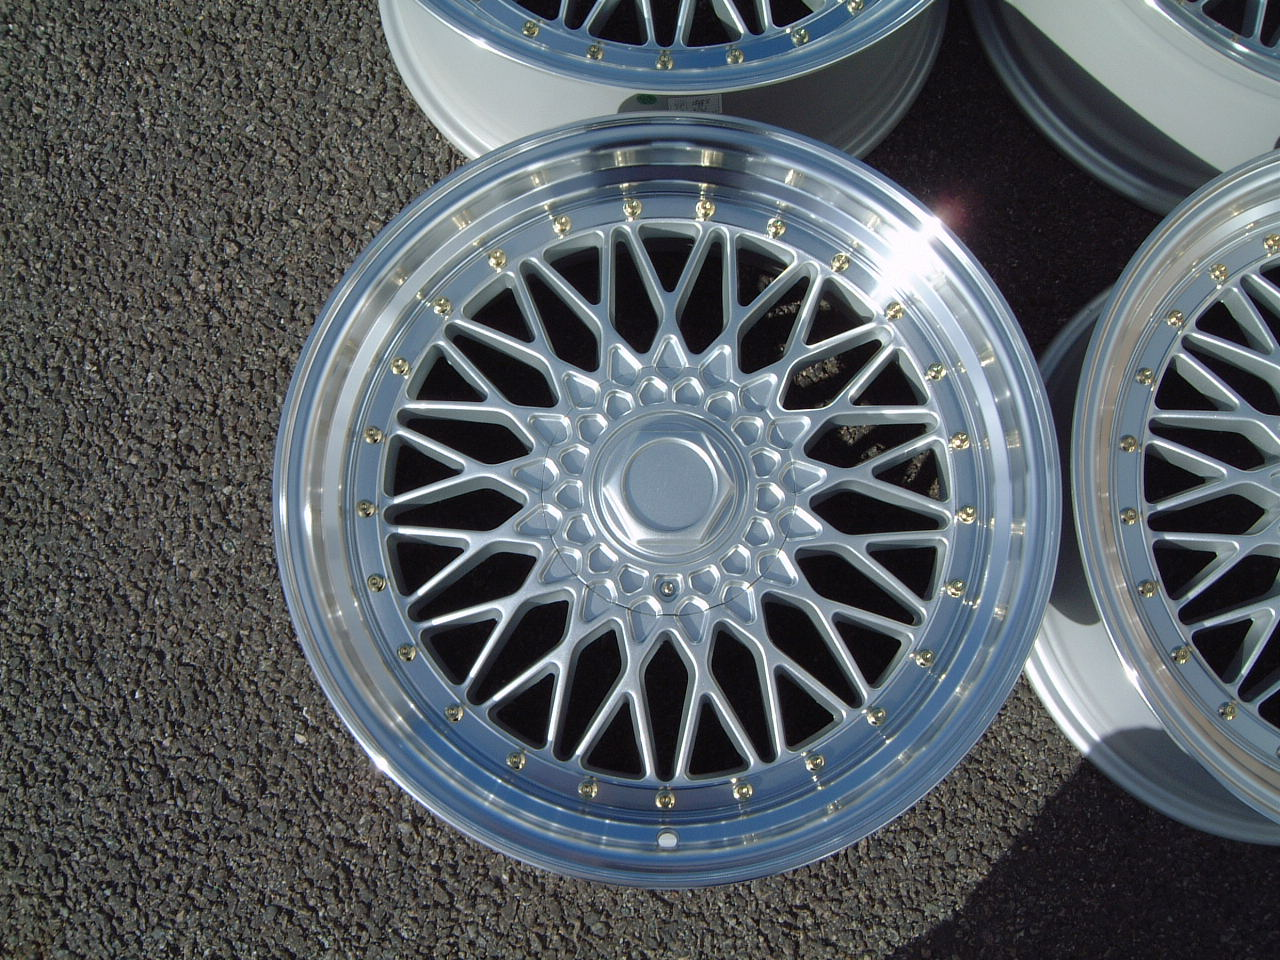 "NEW 18"" DARE RS STYLE ALLOY WHEELS IN SILVER/POLISHED,WITH GOLD RIVETS, DEEP DISH 9.5"" REAR!! et35/38"